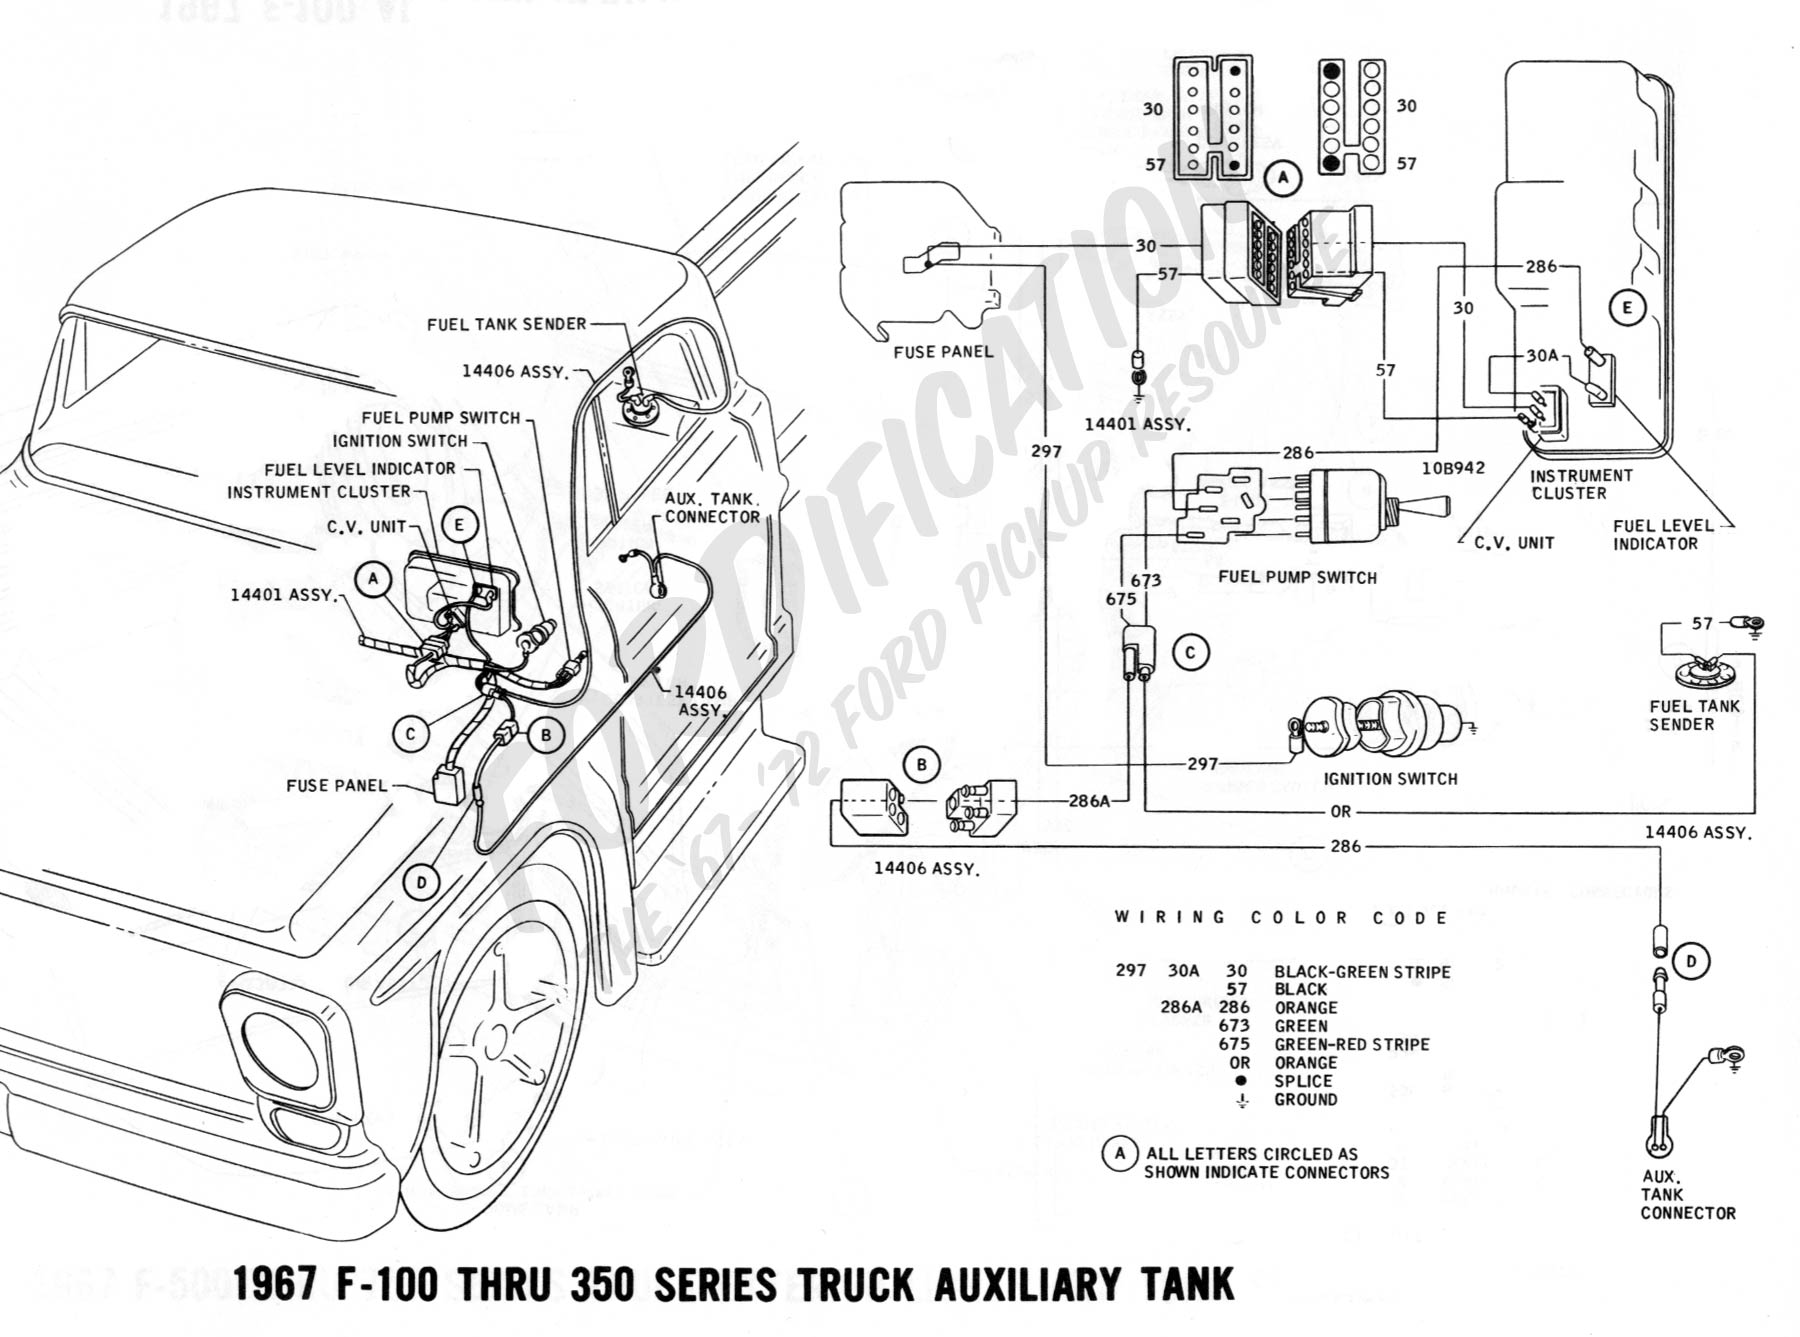 1989 Ford F250 Fuel System Diagram Wiring For 1988 F700 Ranger Diagram1990 Simple Diagramford